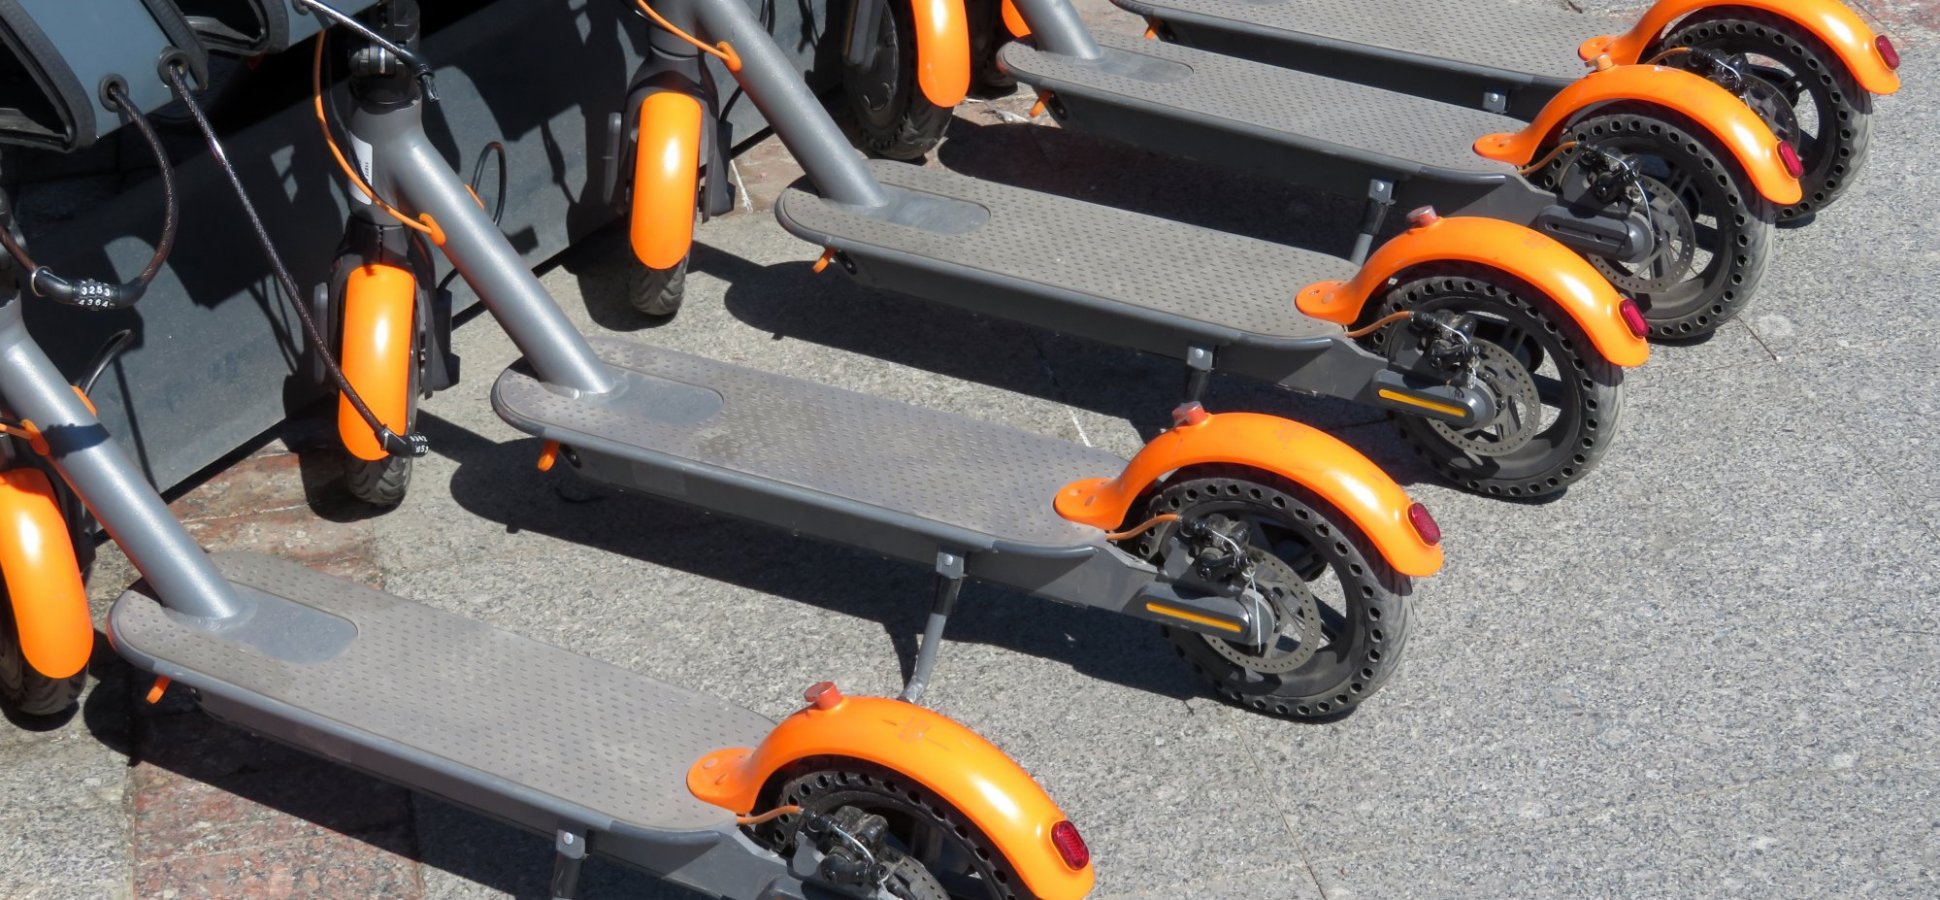 1f11af3e9b1 Scooters, Bikes or Ridesharing? I Tested All 3, and Here's What I Learned